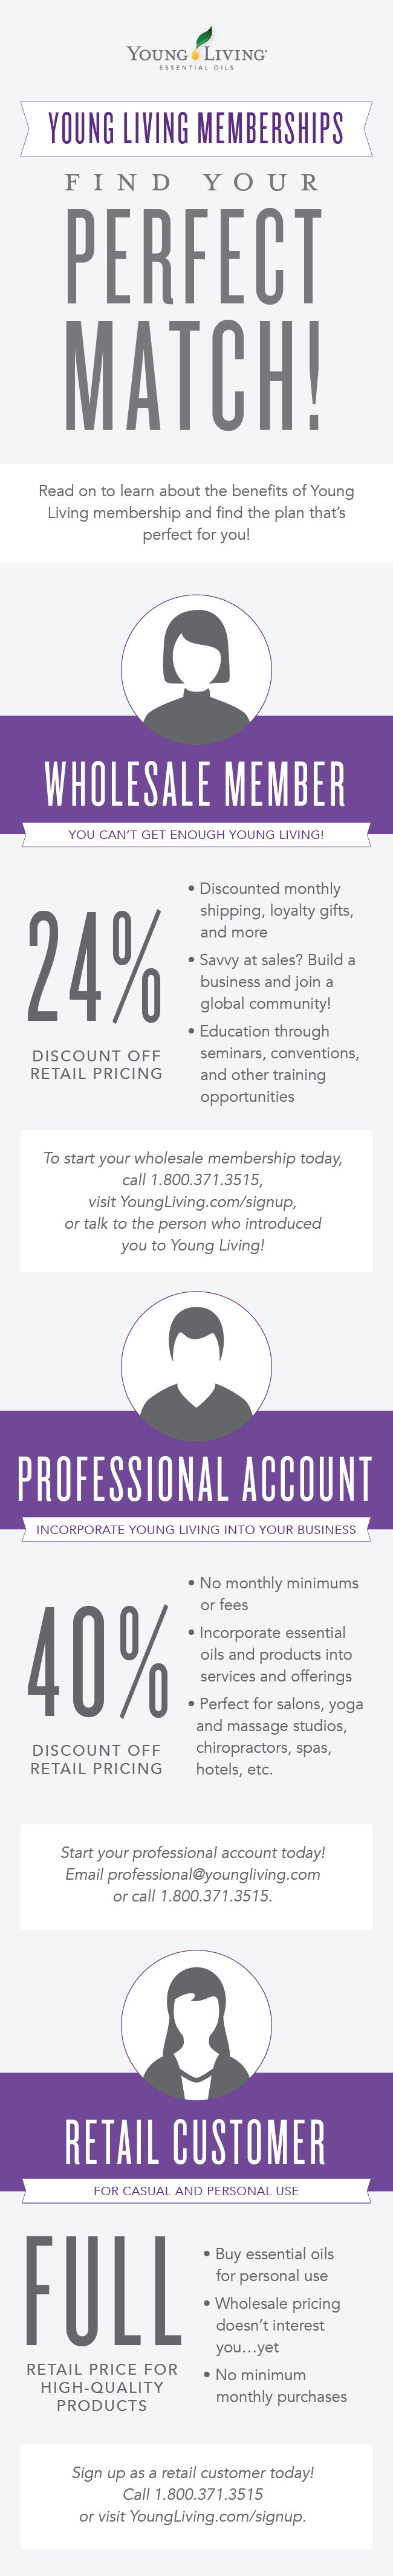 Young Living Membership Types